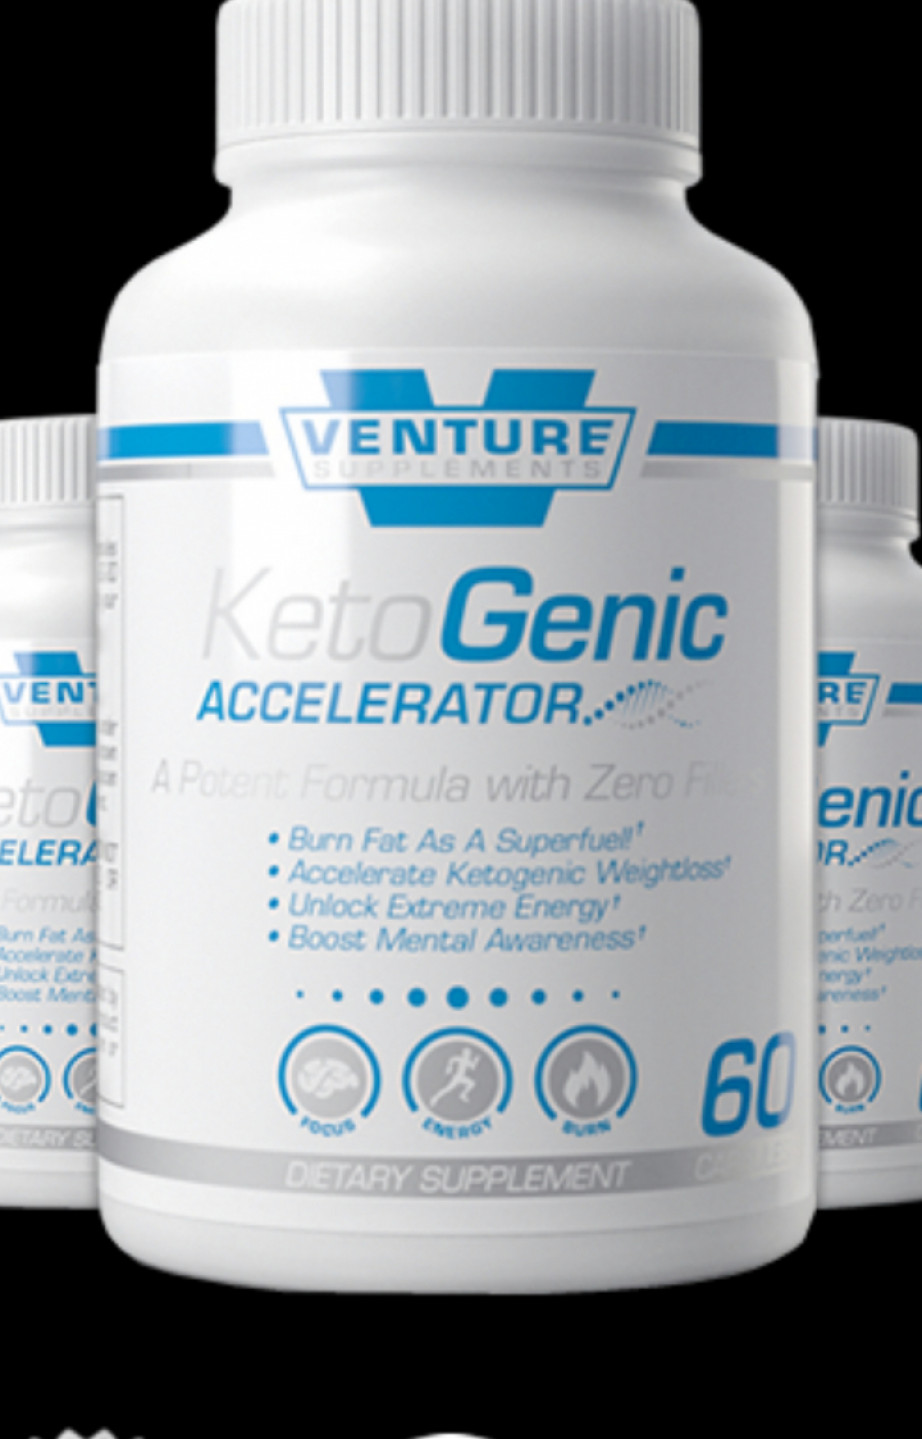 KetoGenic Accelerator - Amazon - Aktion - comments